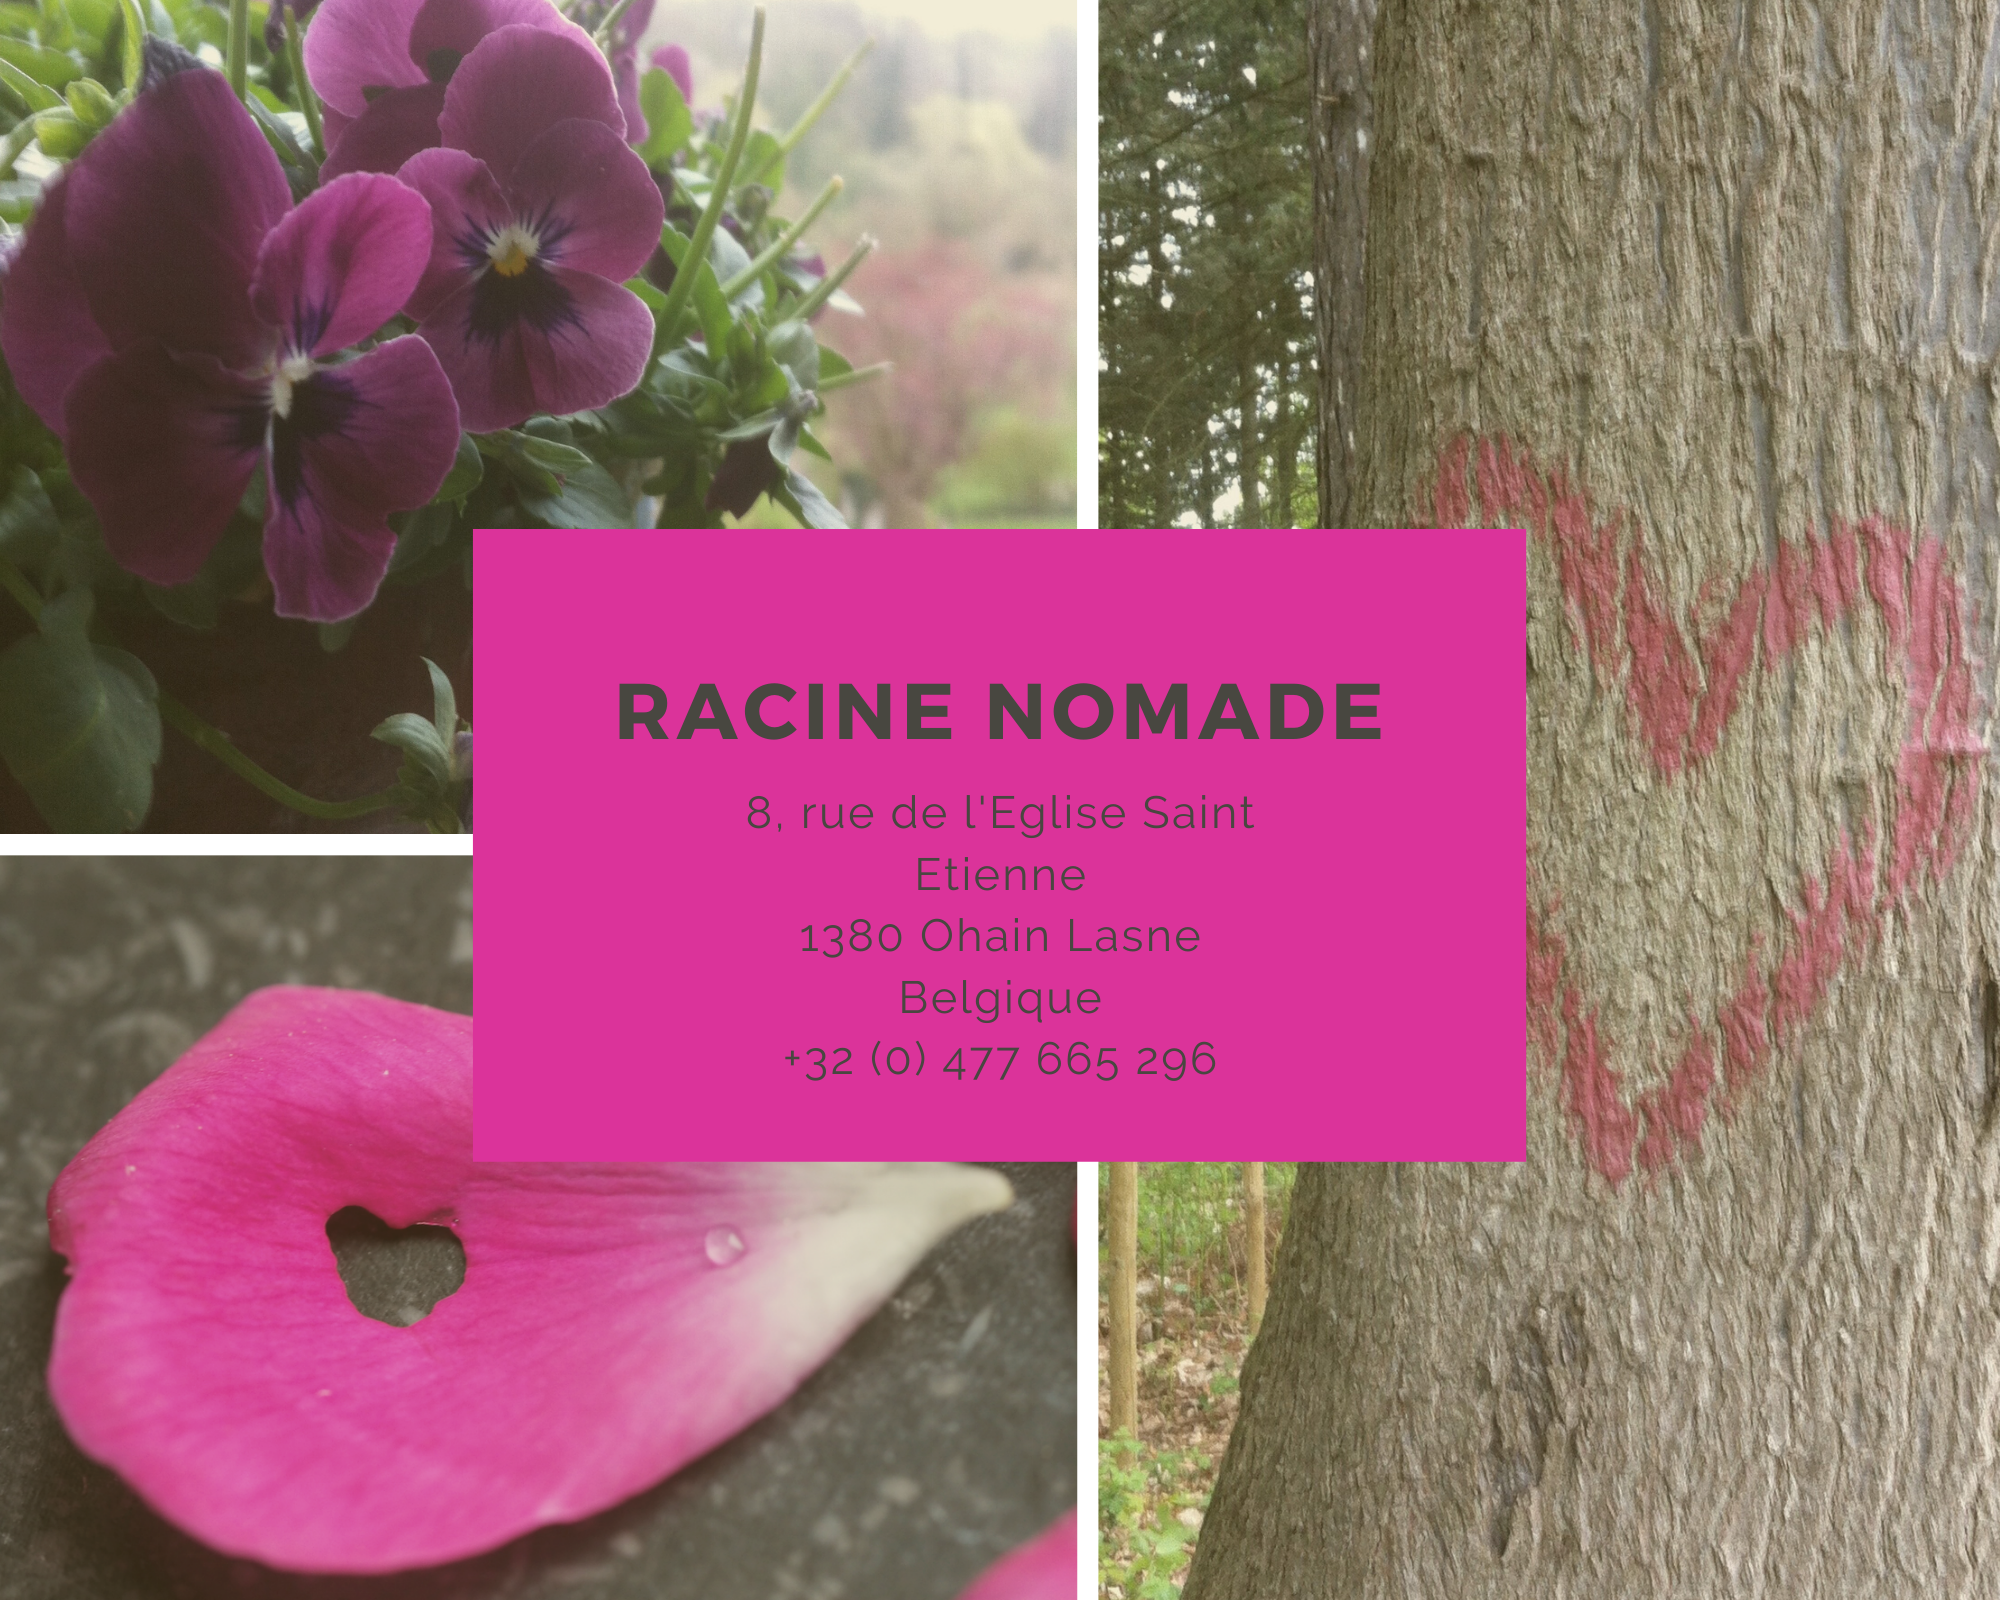 RACINE NOMADE contact